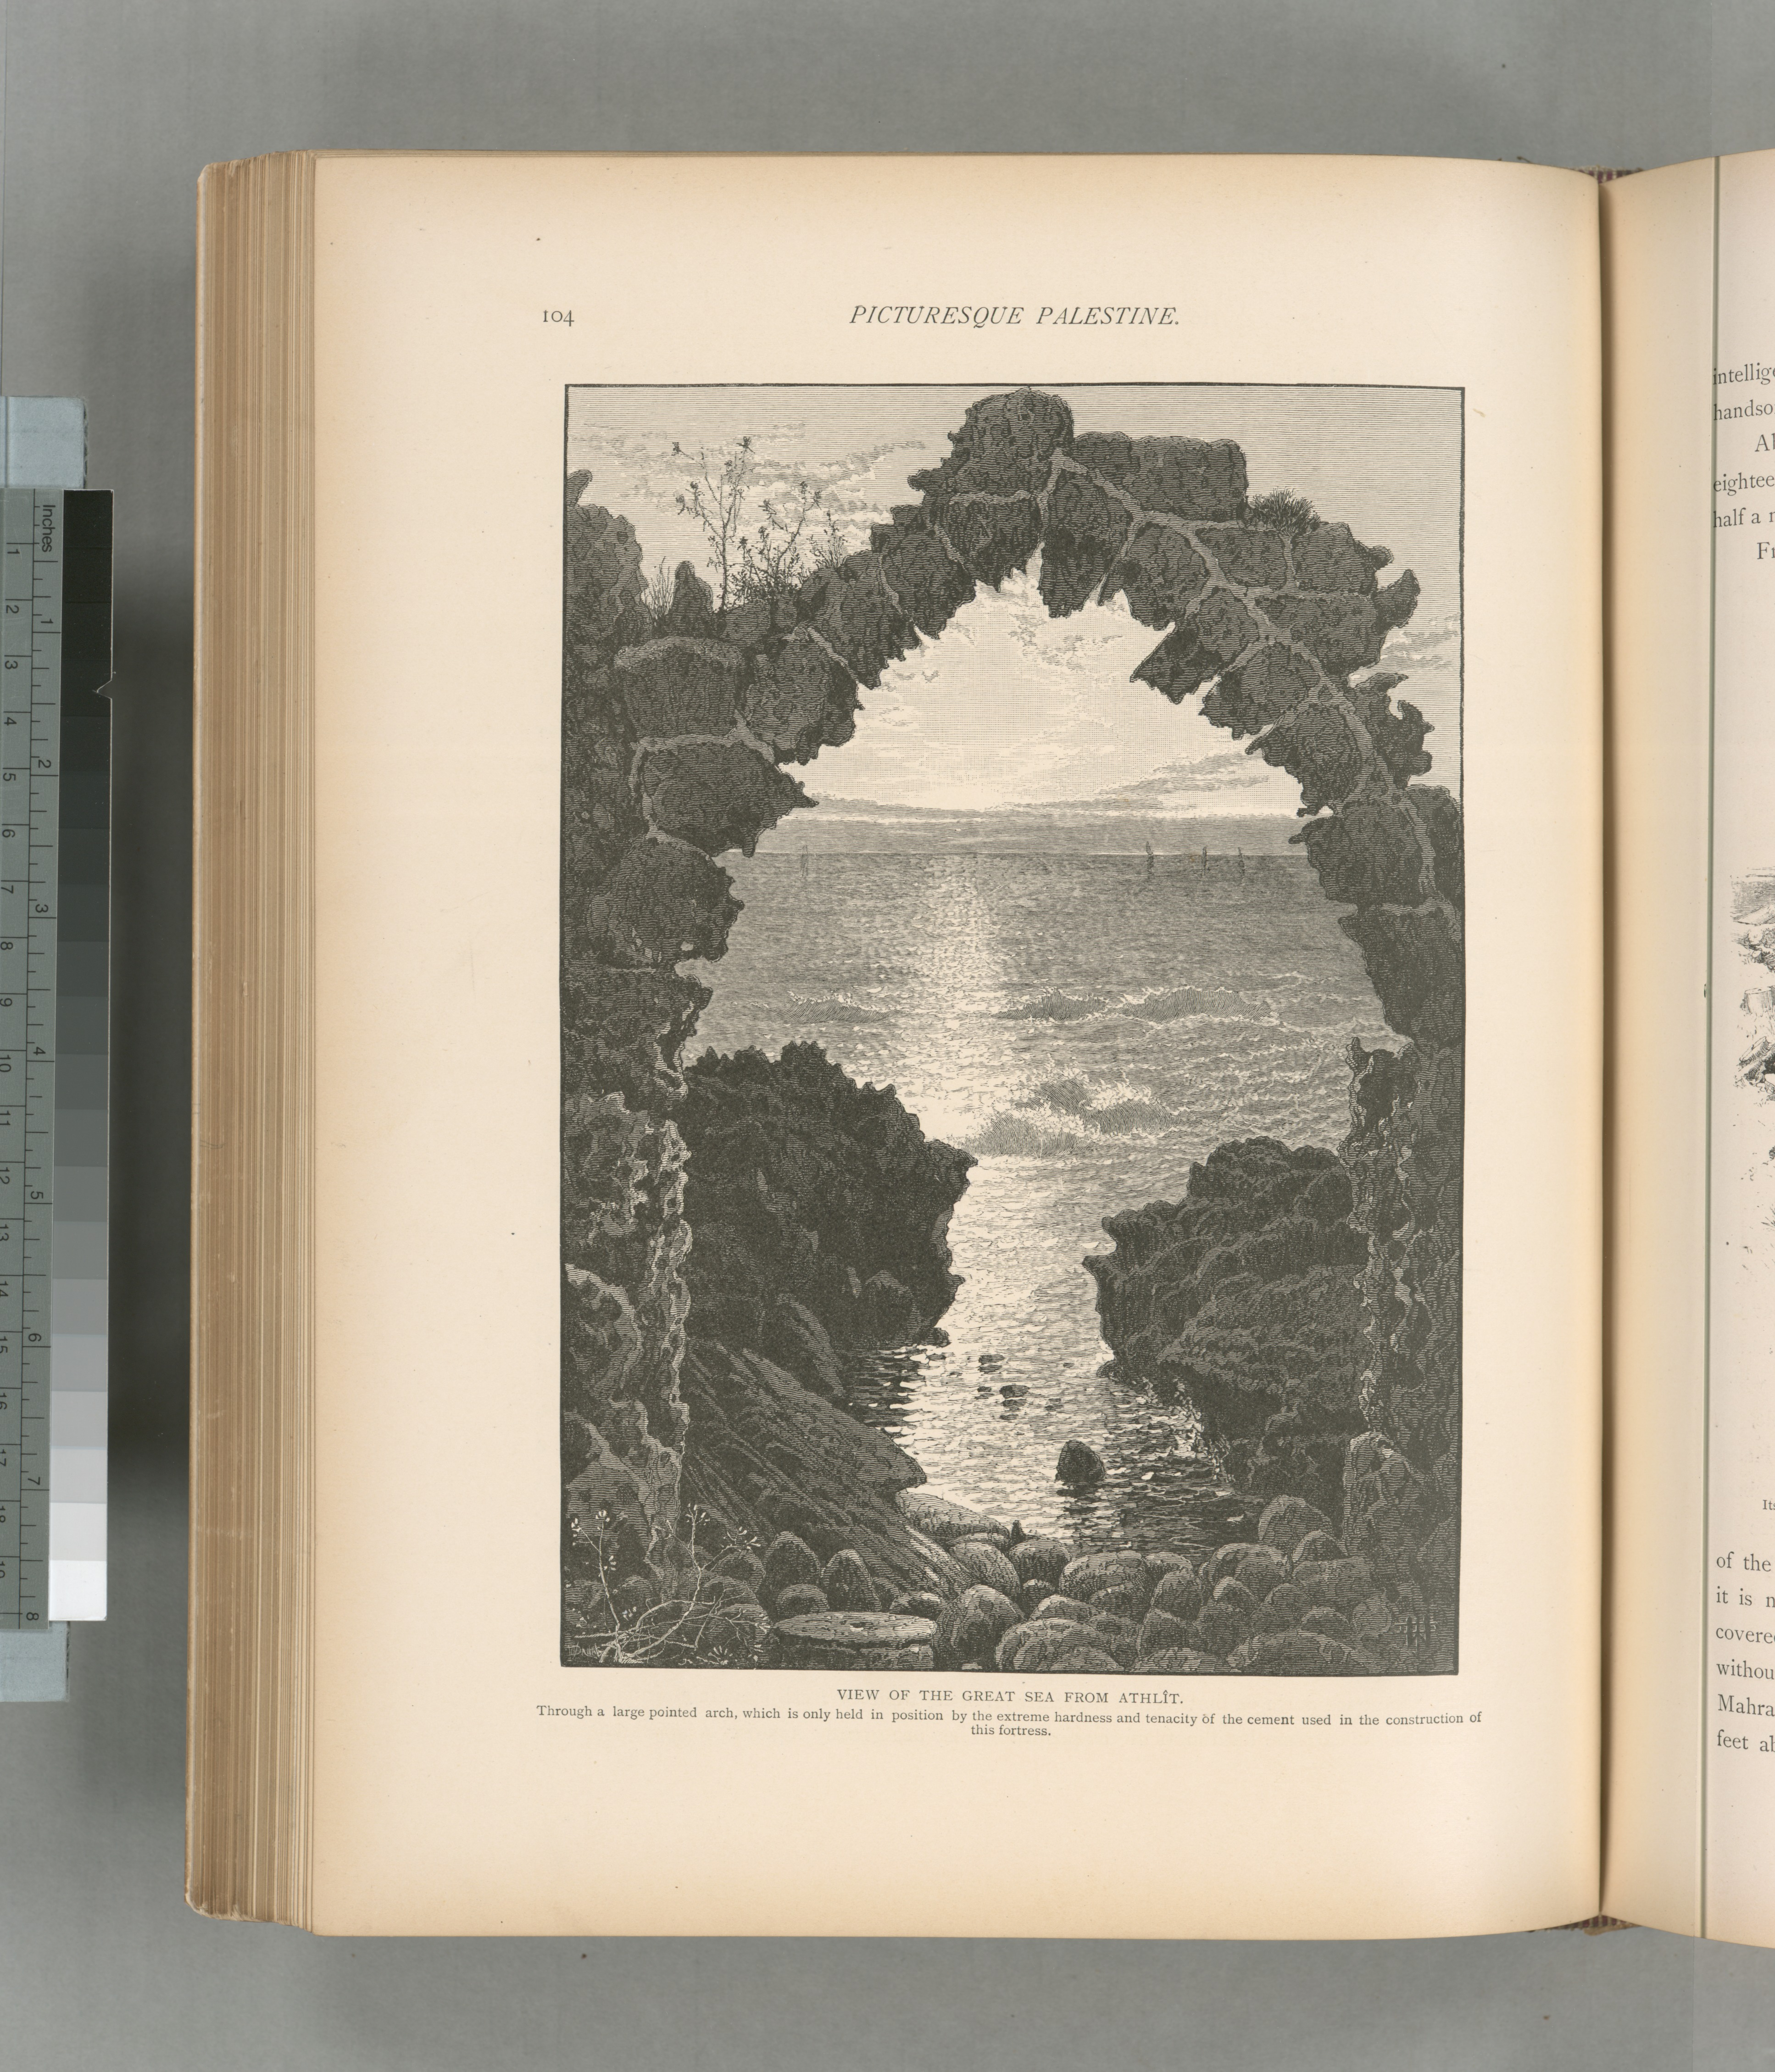 File:View of the great sea from Athlît  Through a large